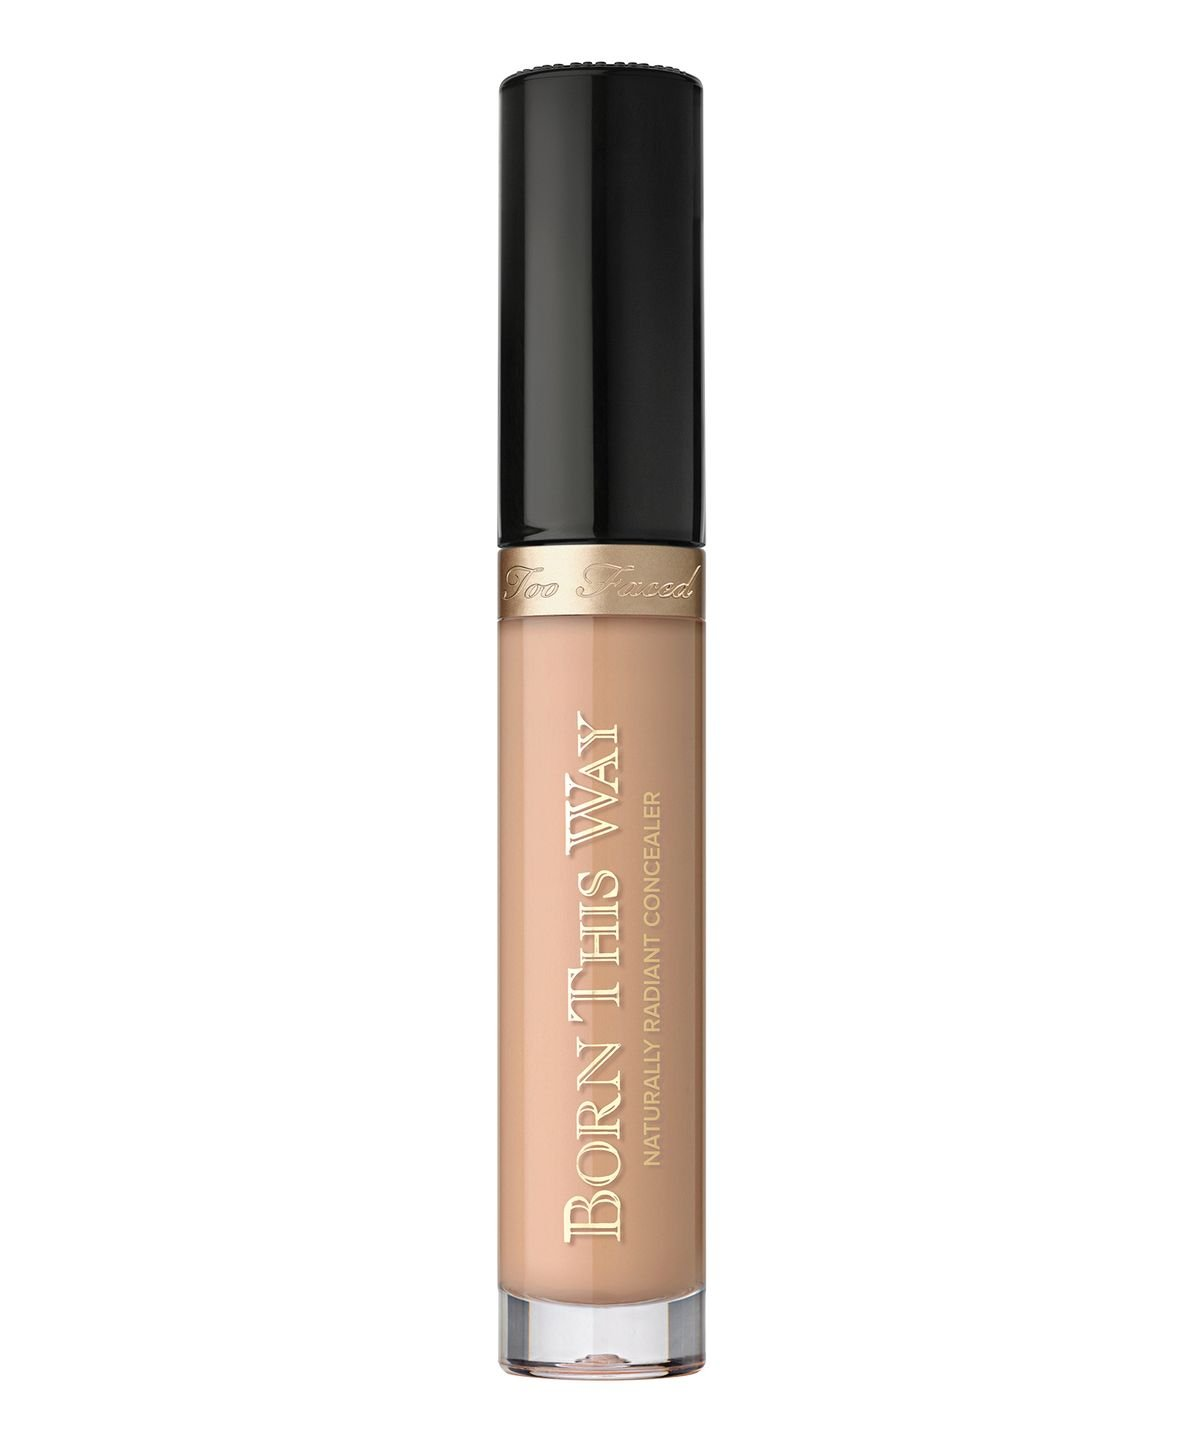 Too Faced Born This Way Naturally Radiant Concealer Medium (Tan with Golden Undertones) by Too Faced